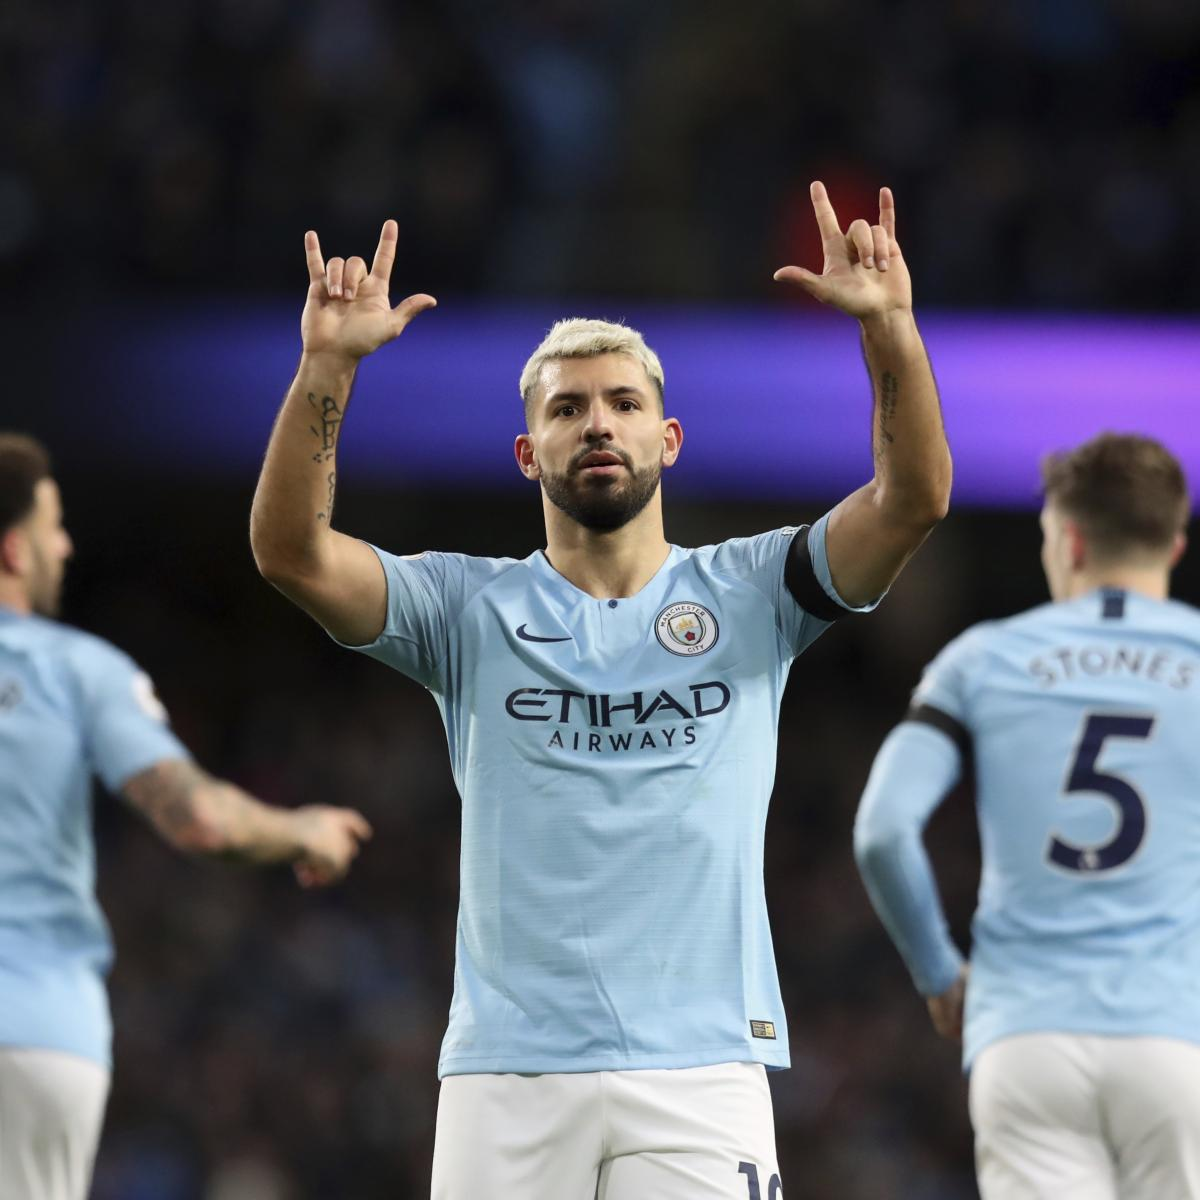 Uefa Champions League Round Of: Champions League 2019: Wednesday Odds, Live Stream For